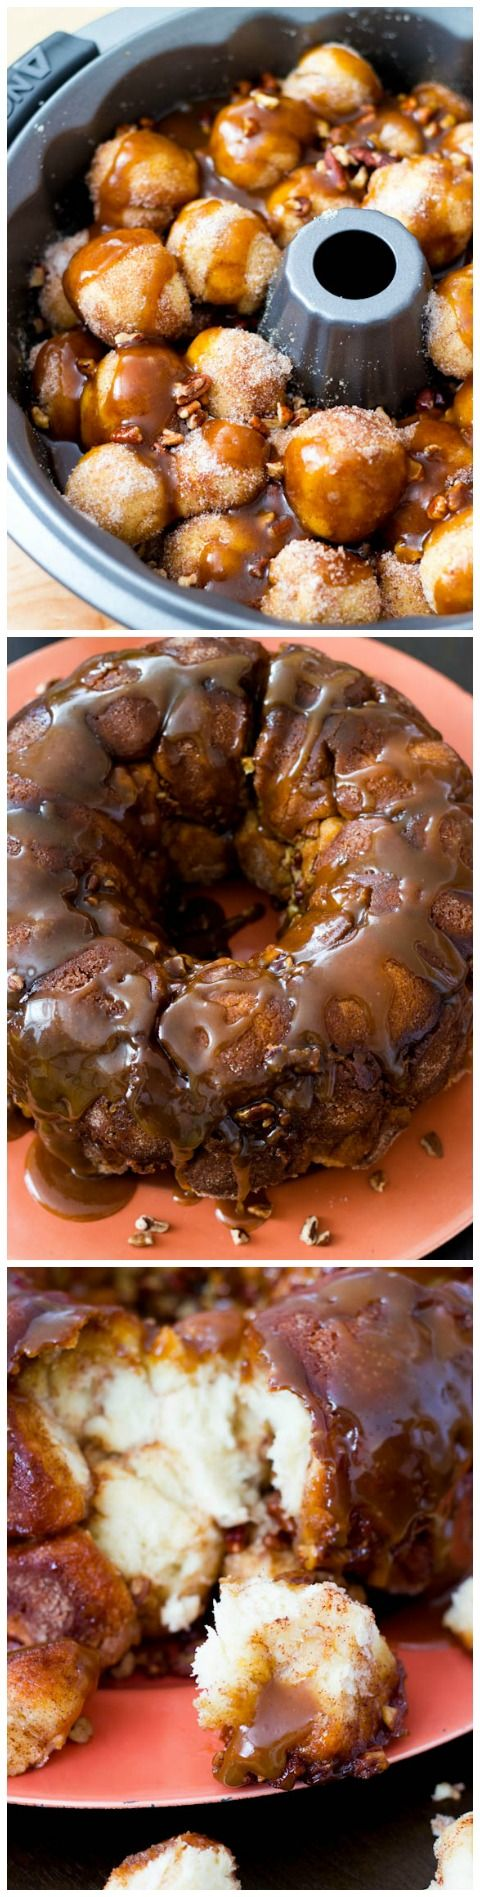 This indulgent Caramel Monkey Bread is guaranteed to be your new family favorite!